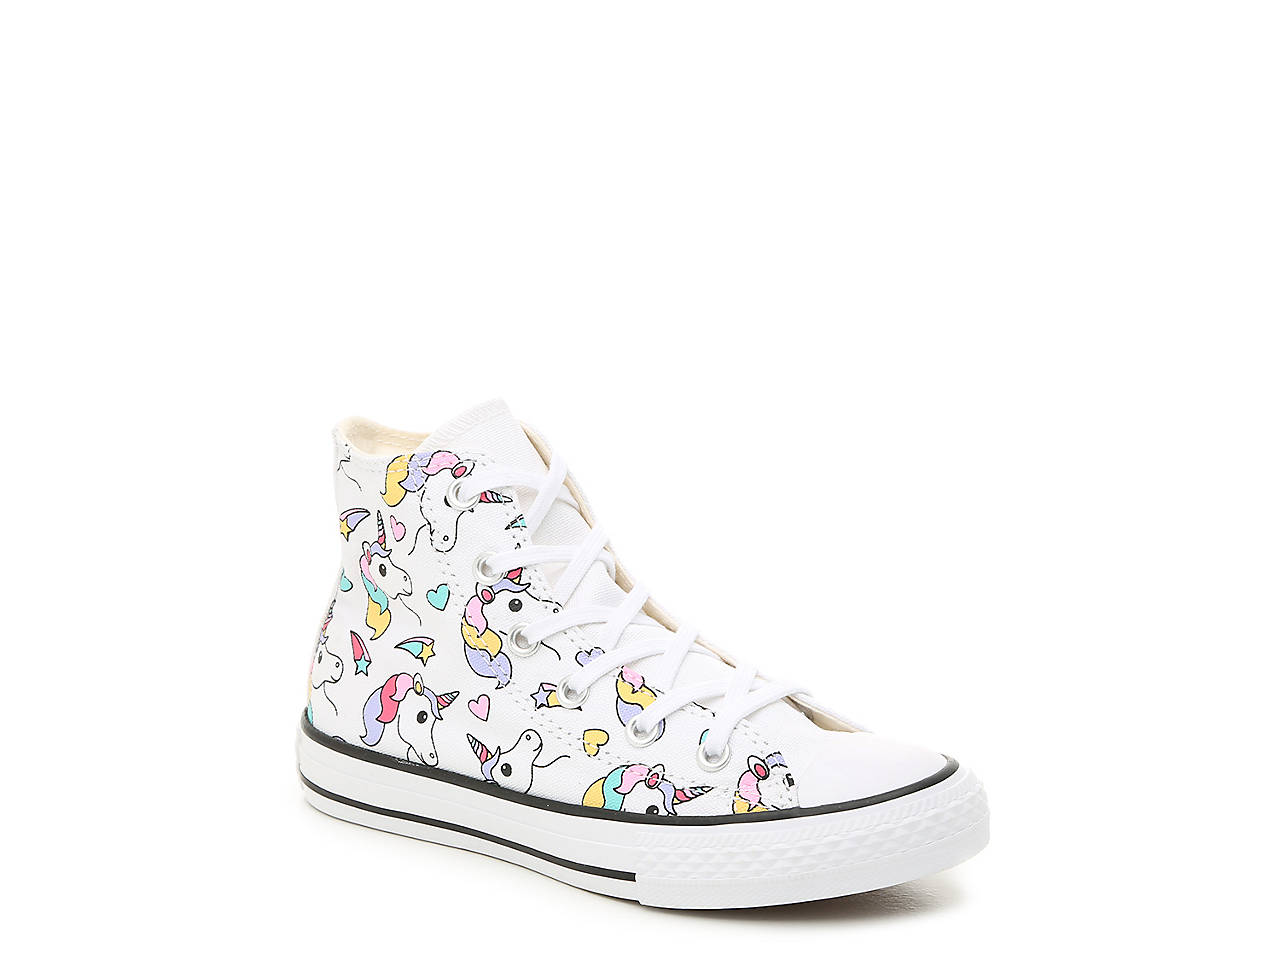 6f67a96d839 Converse Chuck Taylor All Star Unicorn Toddler   Youth High-Top ...